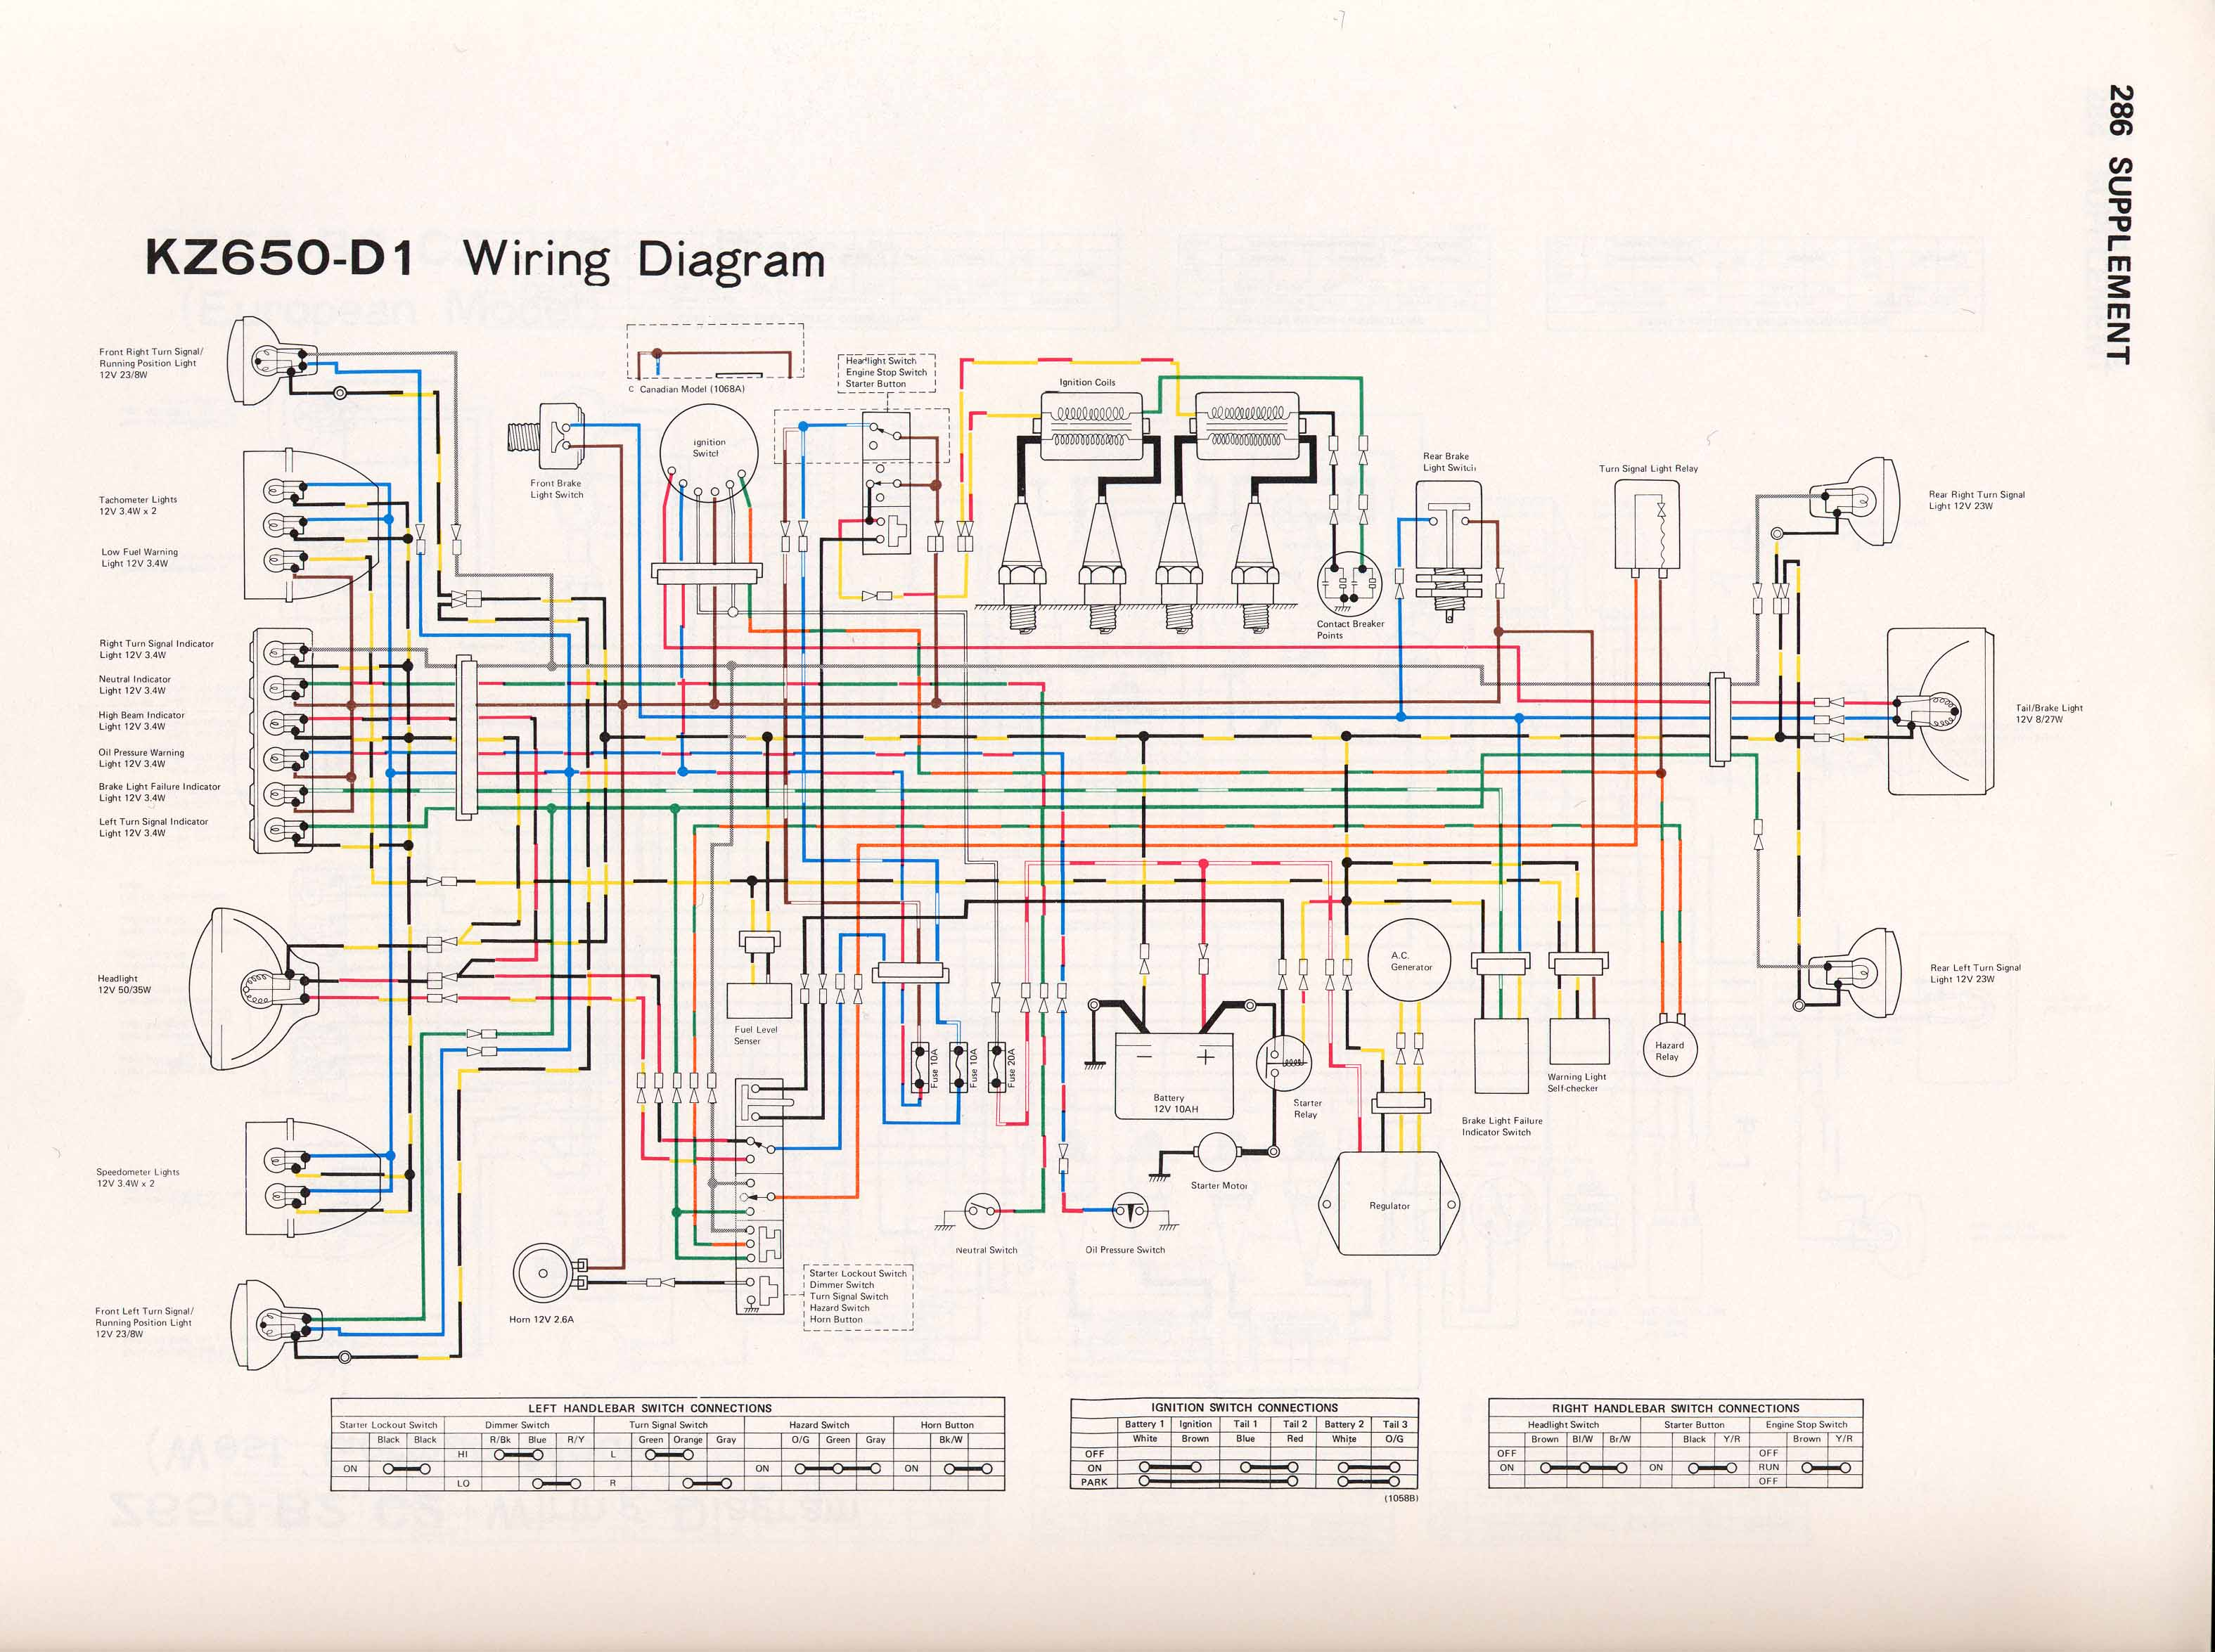 🏆 [DIAGRAM in Pictures Database] 2010 Kawasaki Wiring Diagrams Just  Download or Read Wiring Diagrams - KEN.SCHWABER.PUTCO-TAILGATE.WIRING .ONYXUM.COMComplete Diagram Picture Database - Onyxum.com